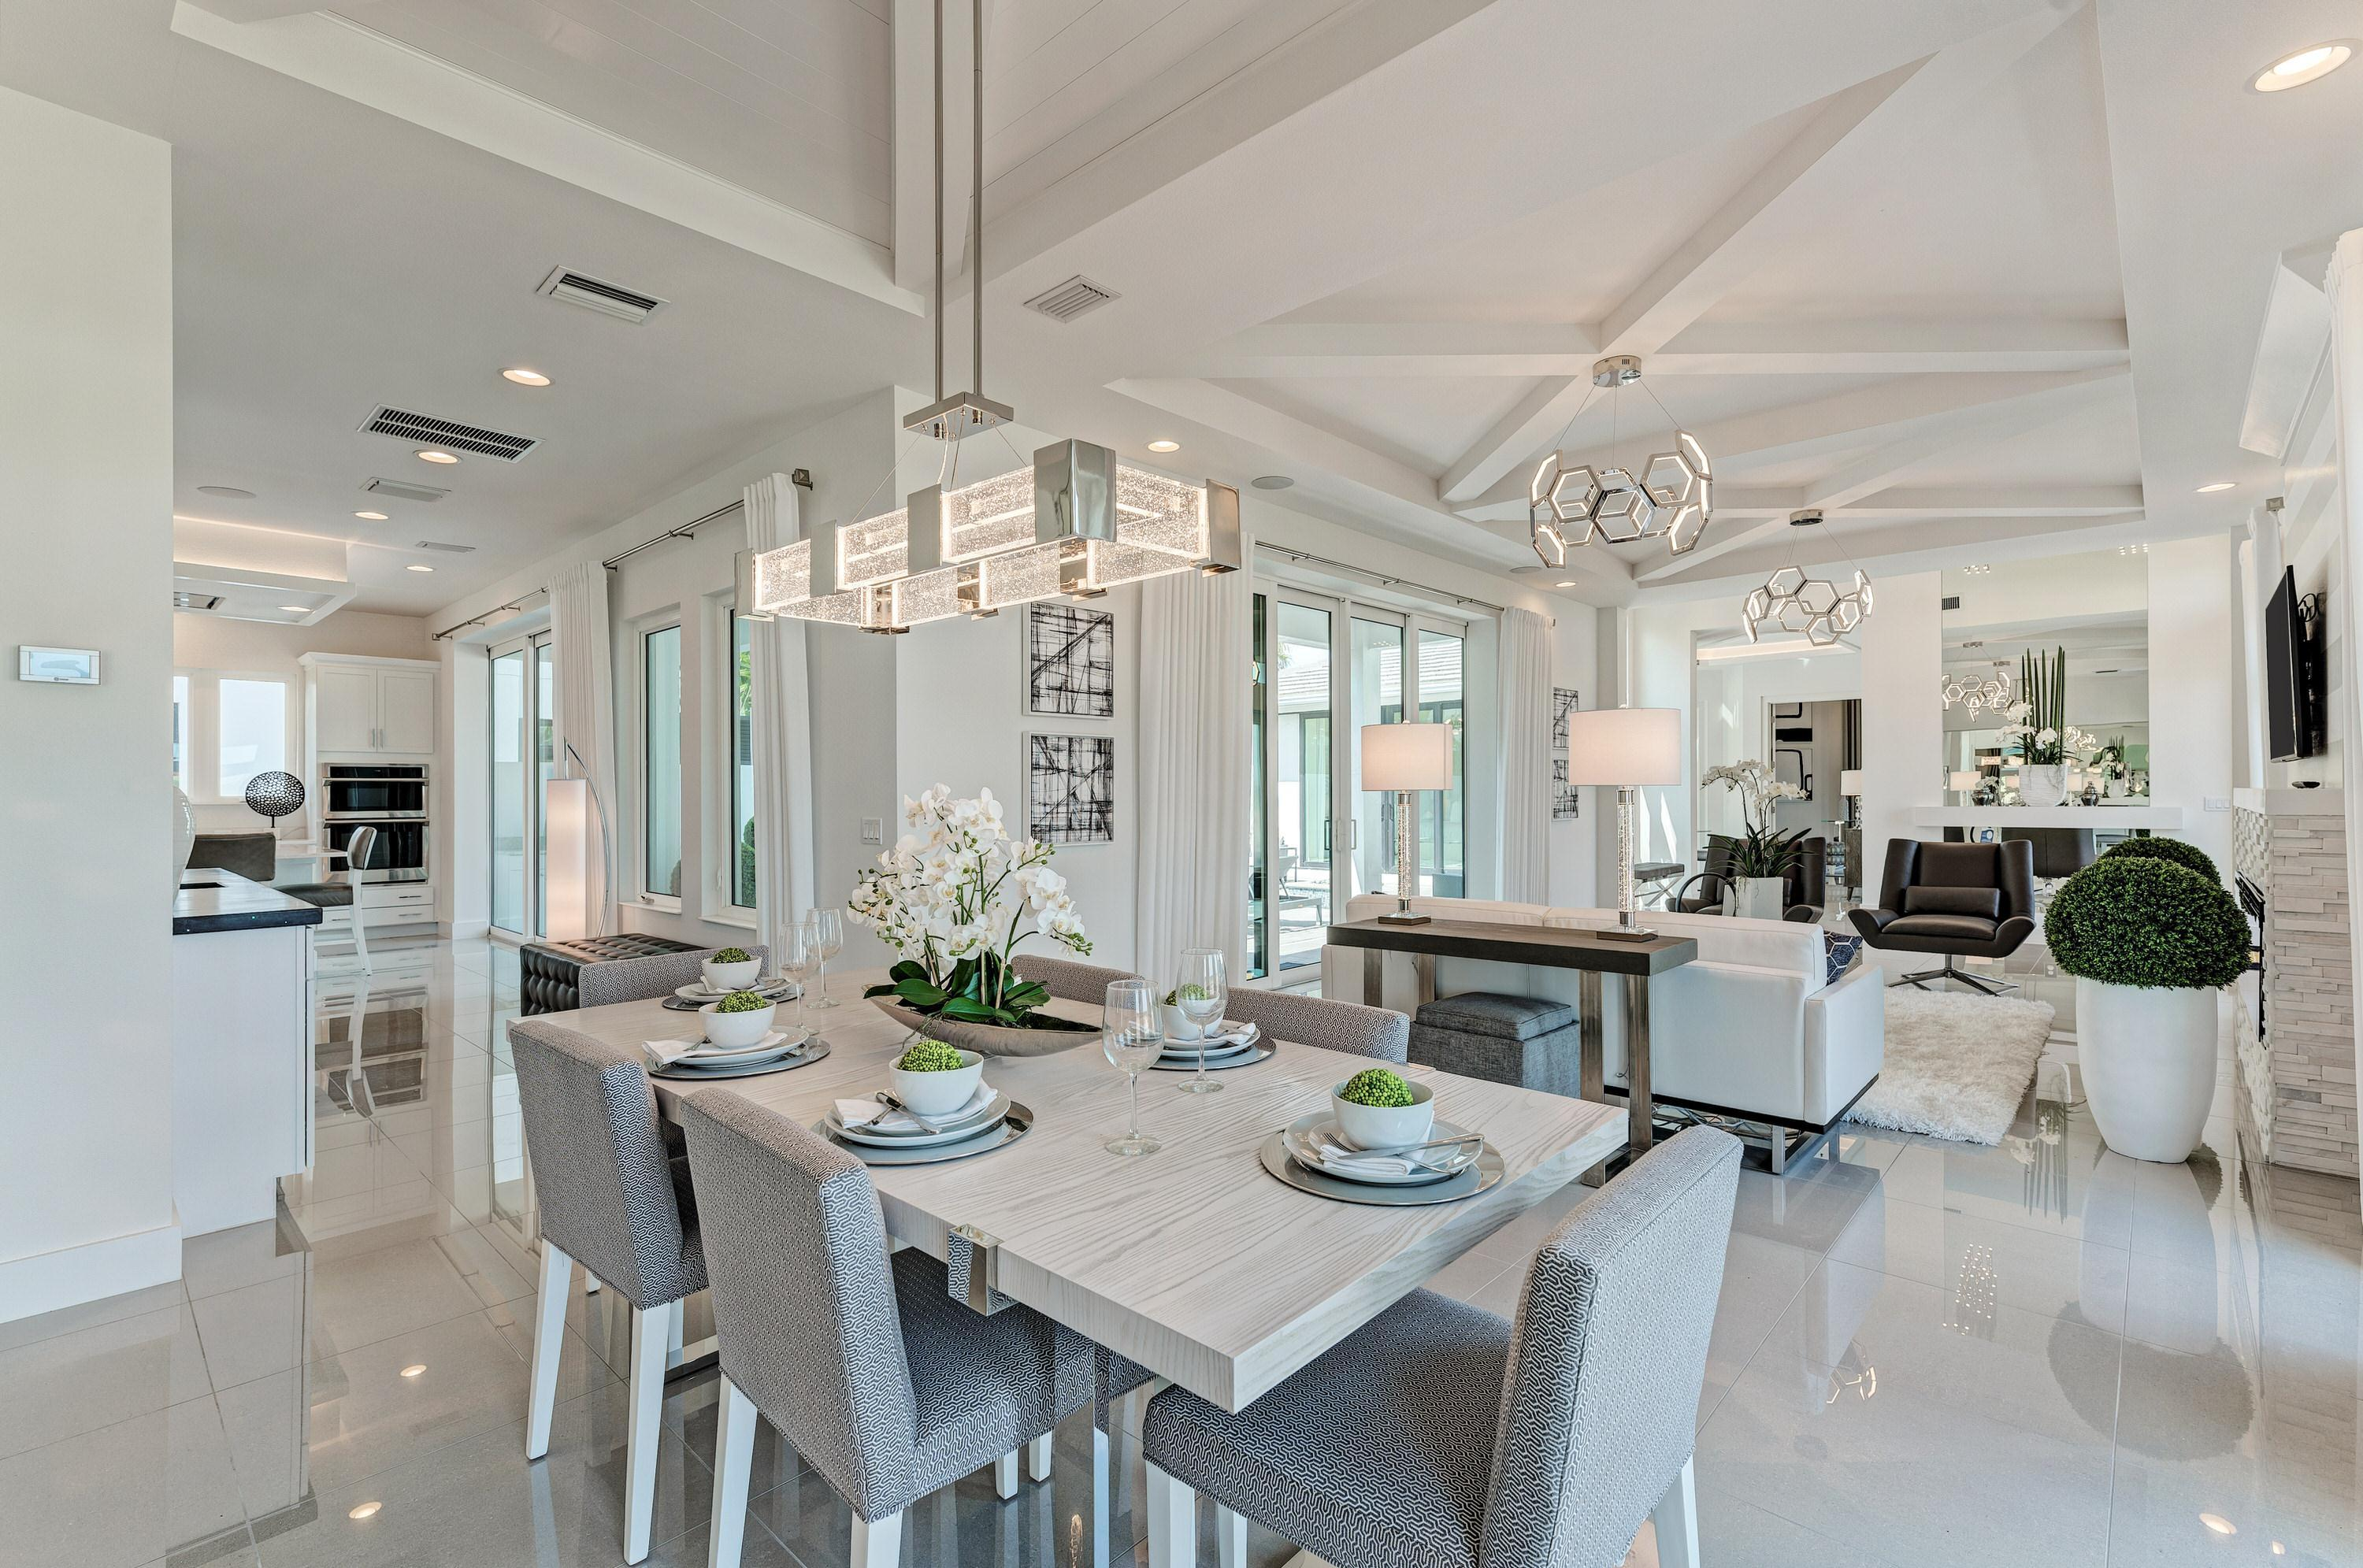 Living Area featured in the Cat Claw By Medallion Home in Sarasota-Bradenton, FL